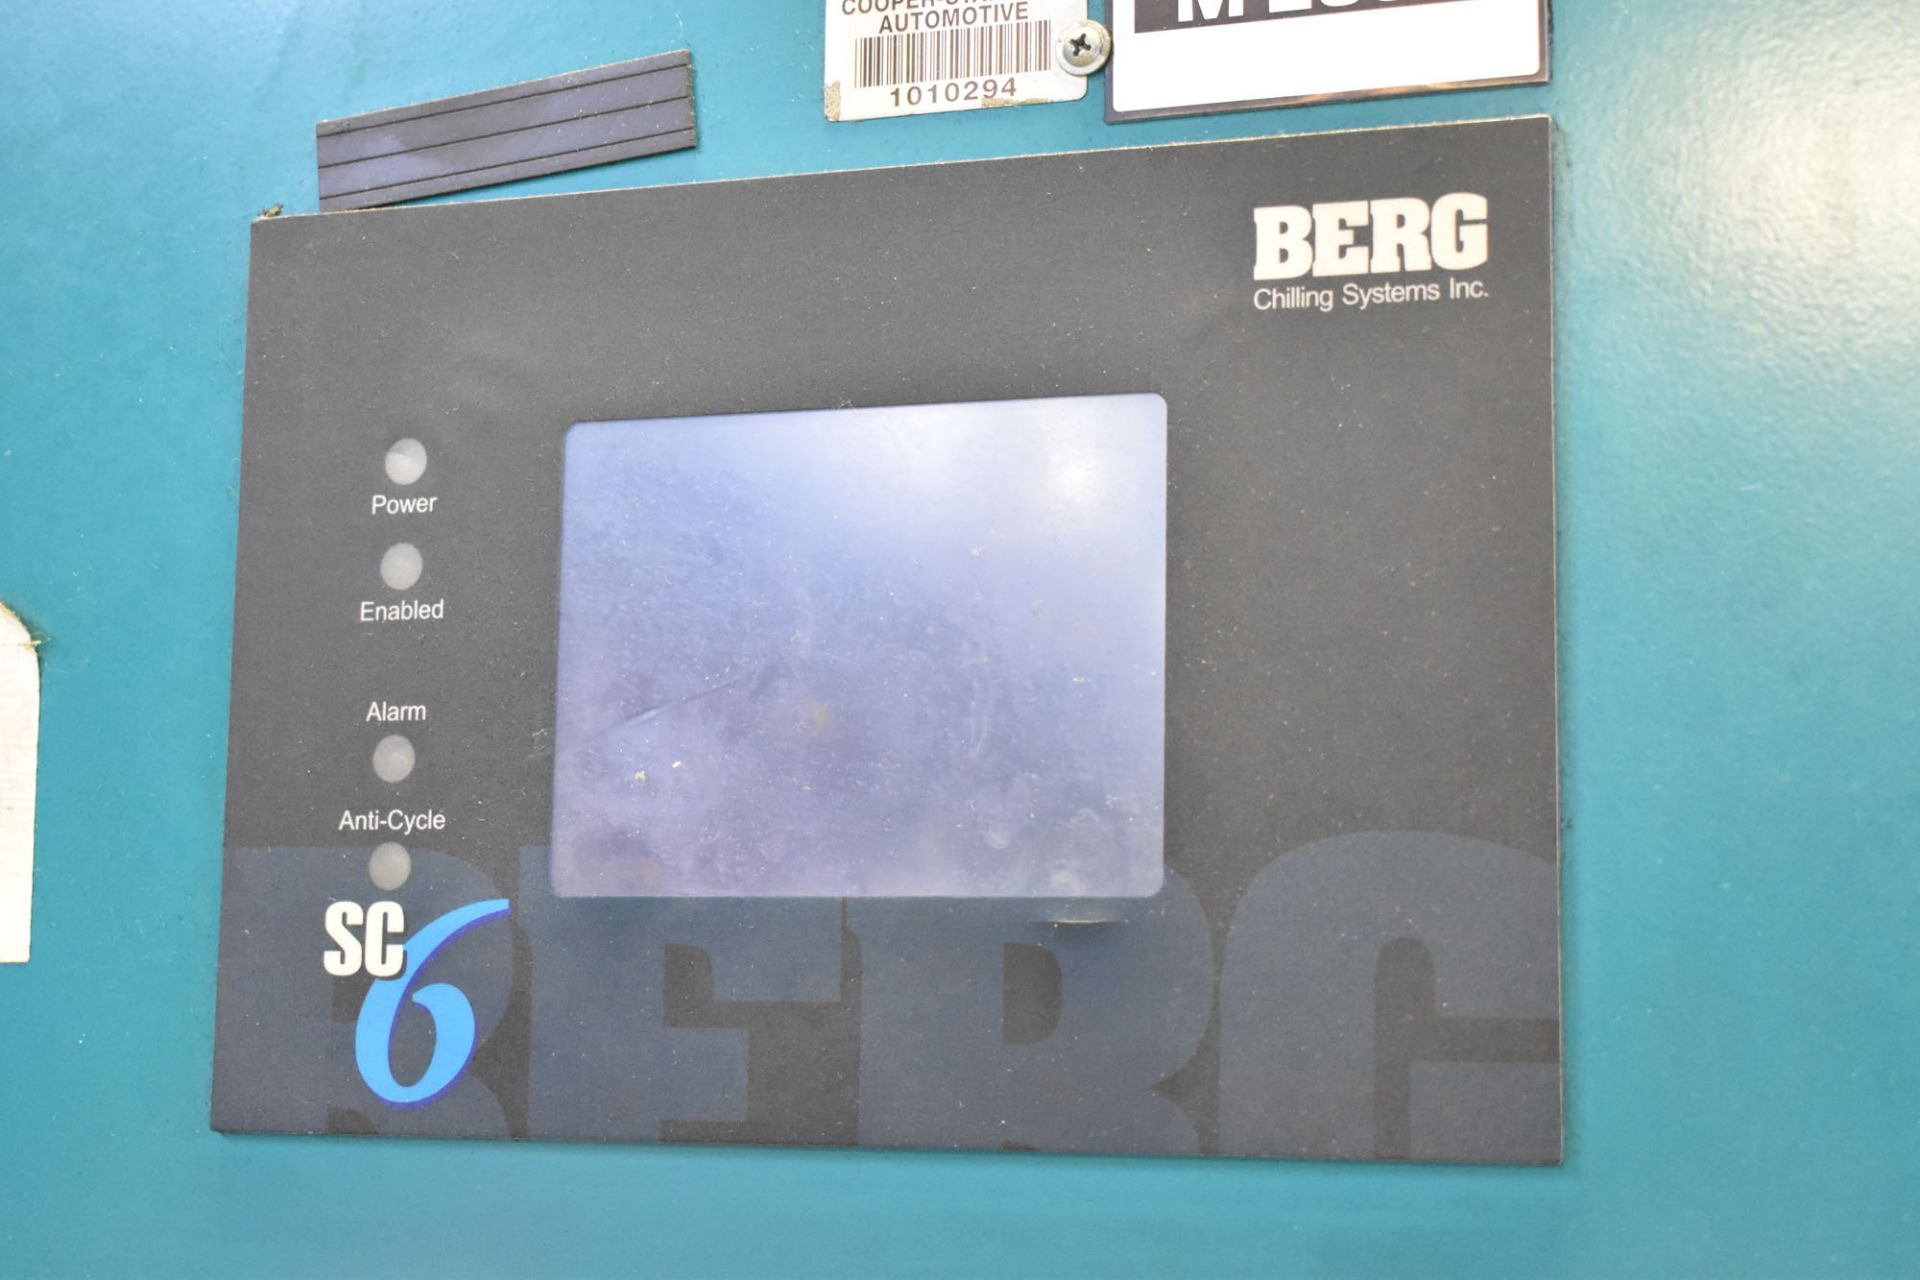 BERG AZ-30-2/1-3P-R SKID MOUNTED INDUSTRIAL CHILLER WITH 30 TON CAPACITY, 55 HP, BERG SC6 TOUCH- - Image 2 of 6